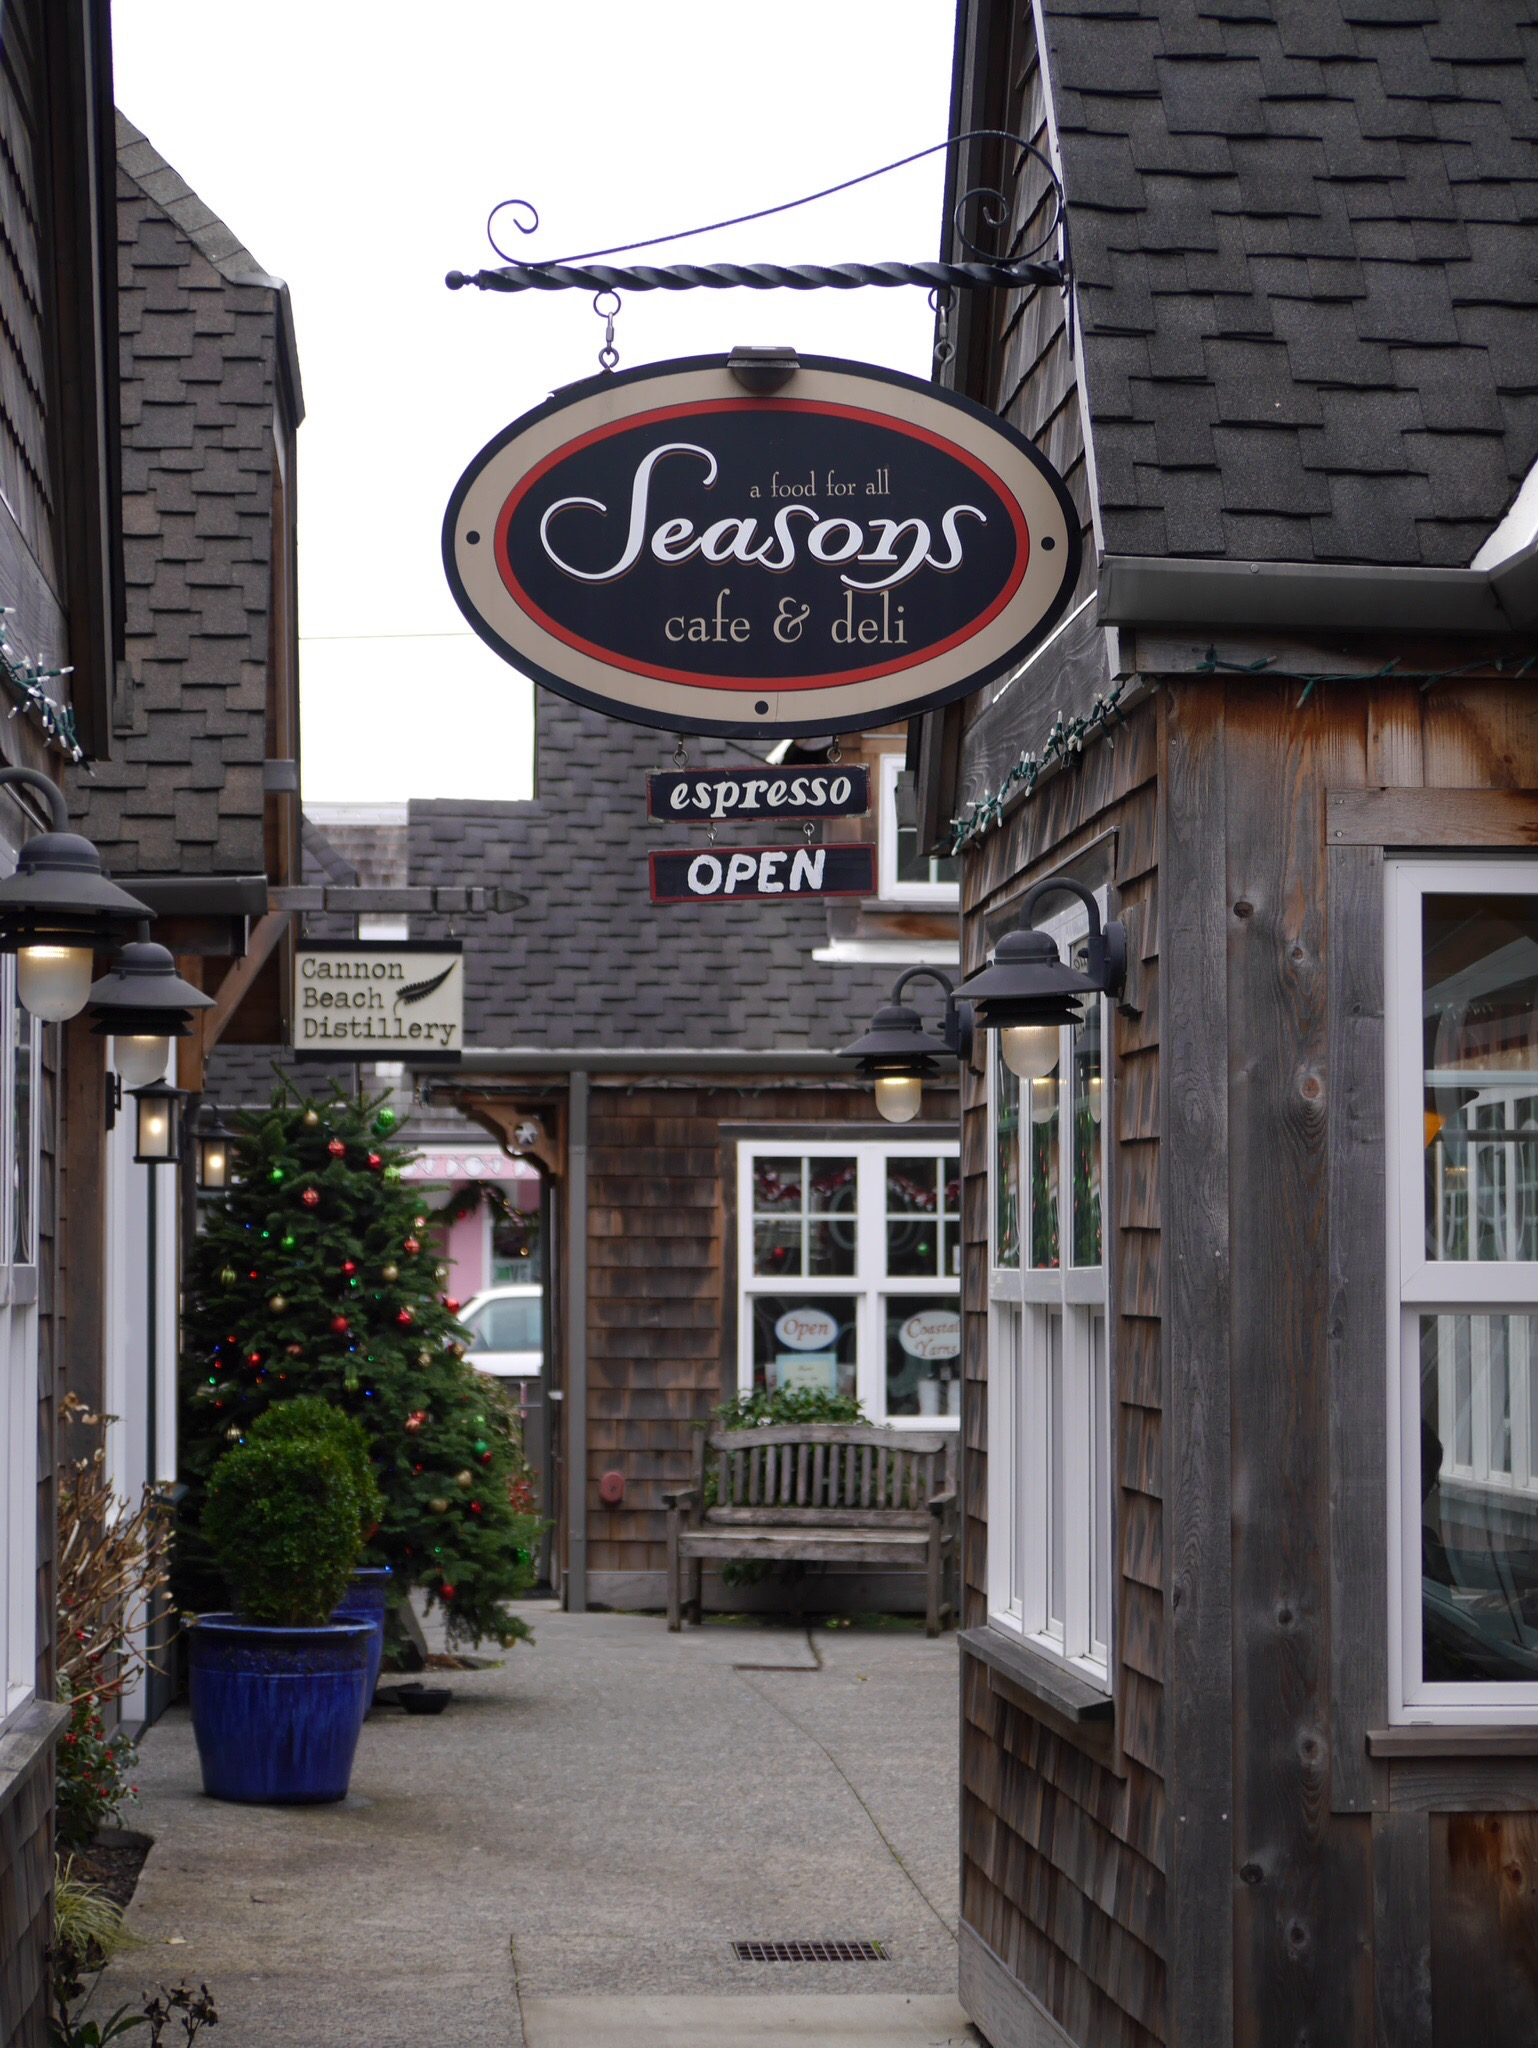 Seasons Cafe in Cannon Beach, OR (photo by Cat Stelzer)